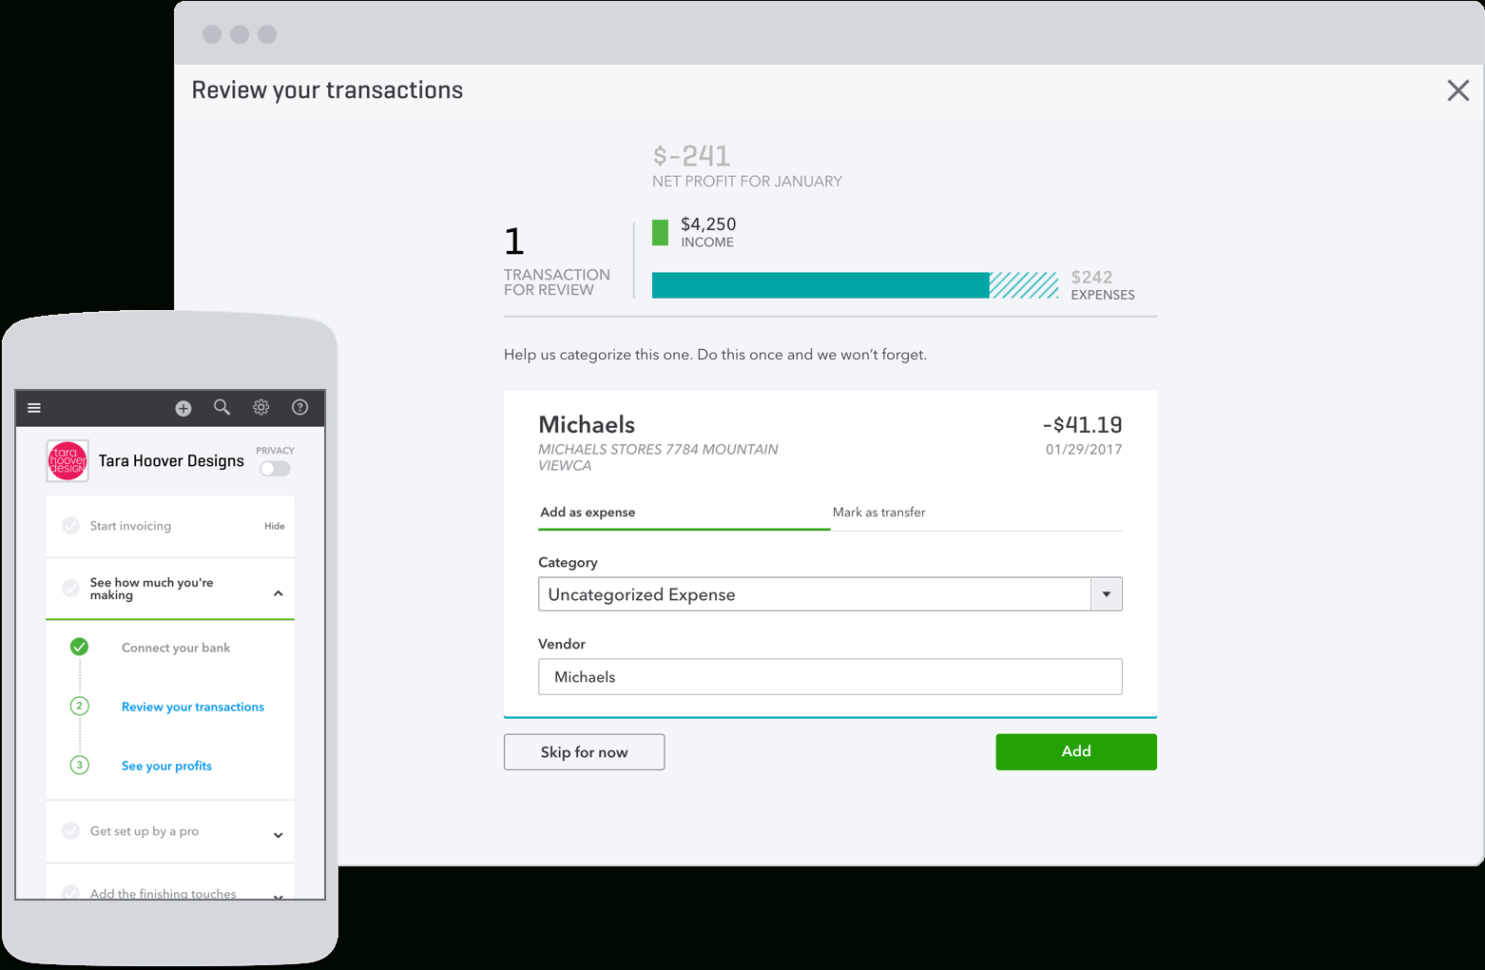 Track Expenses, Business Expense Tracking For Online Business Expense Tracker